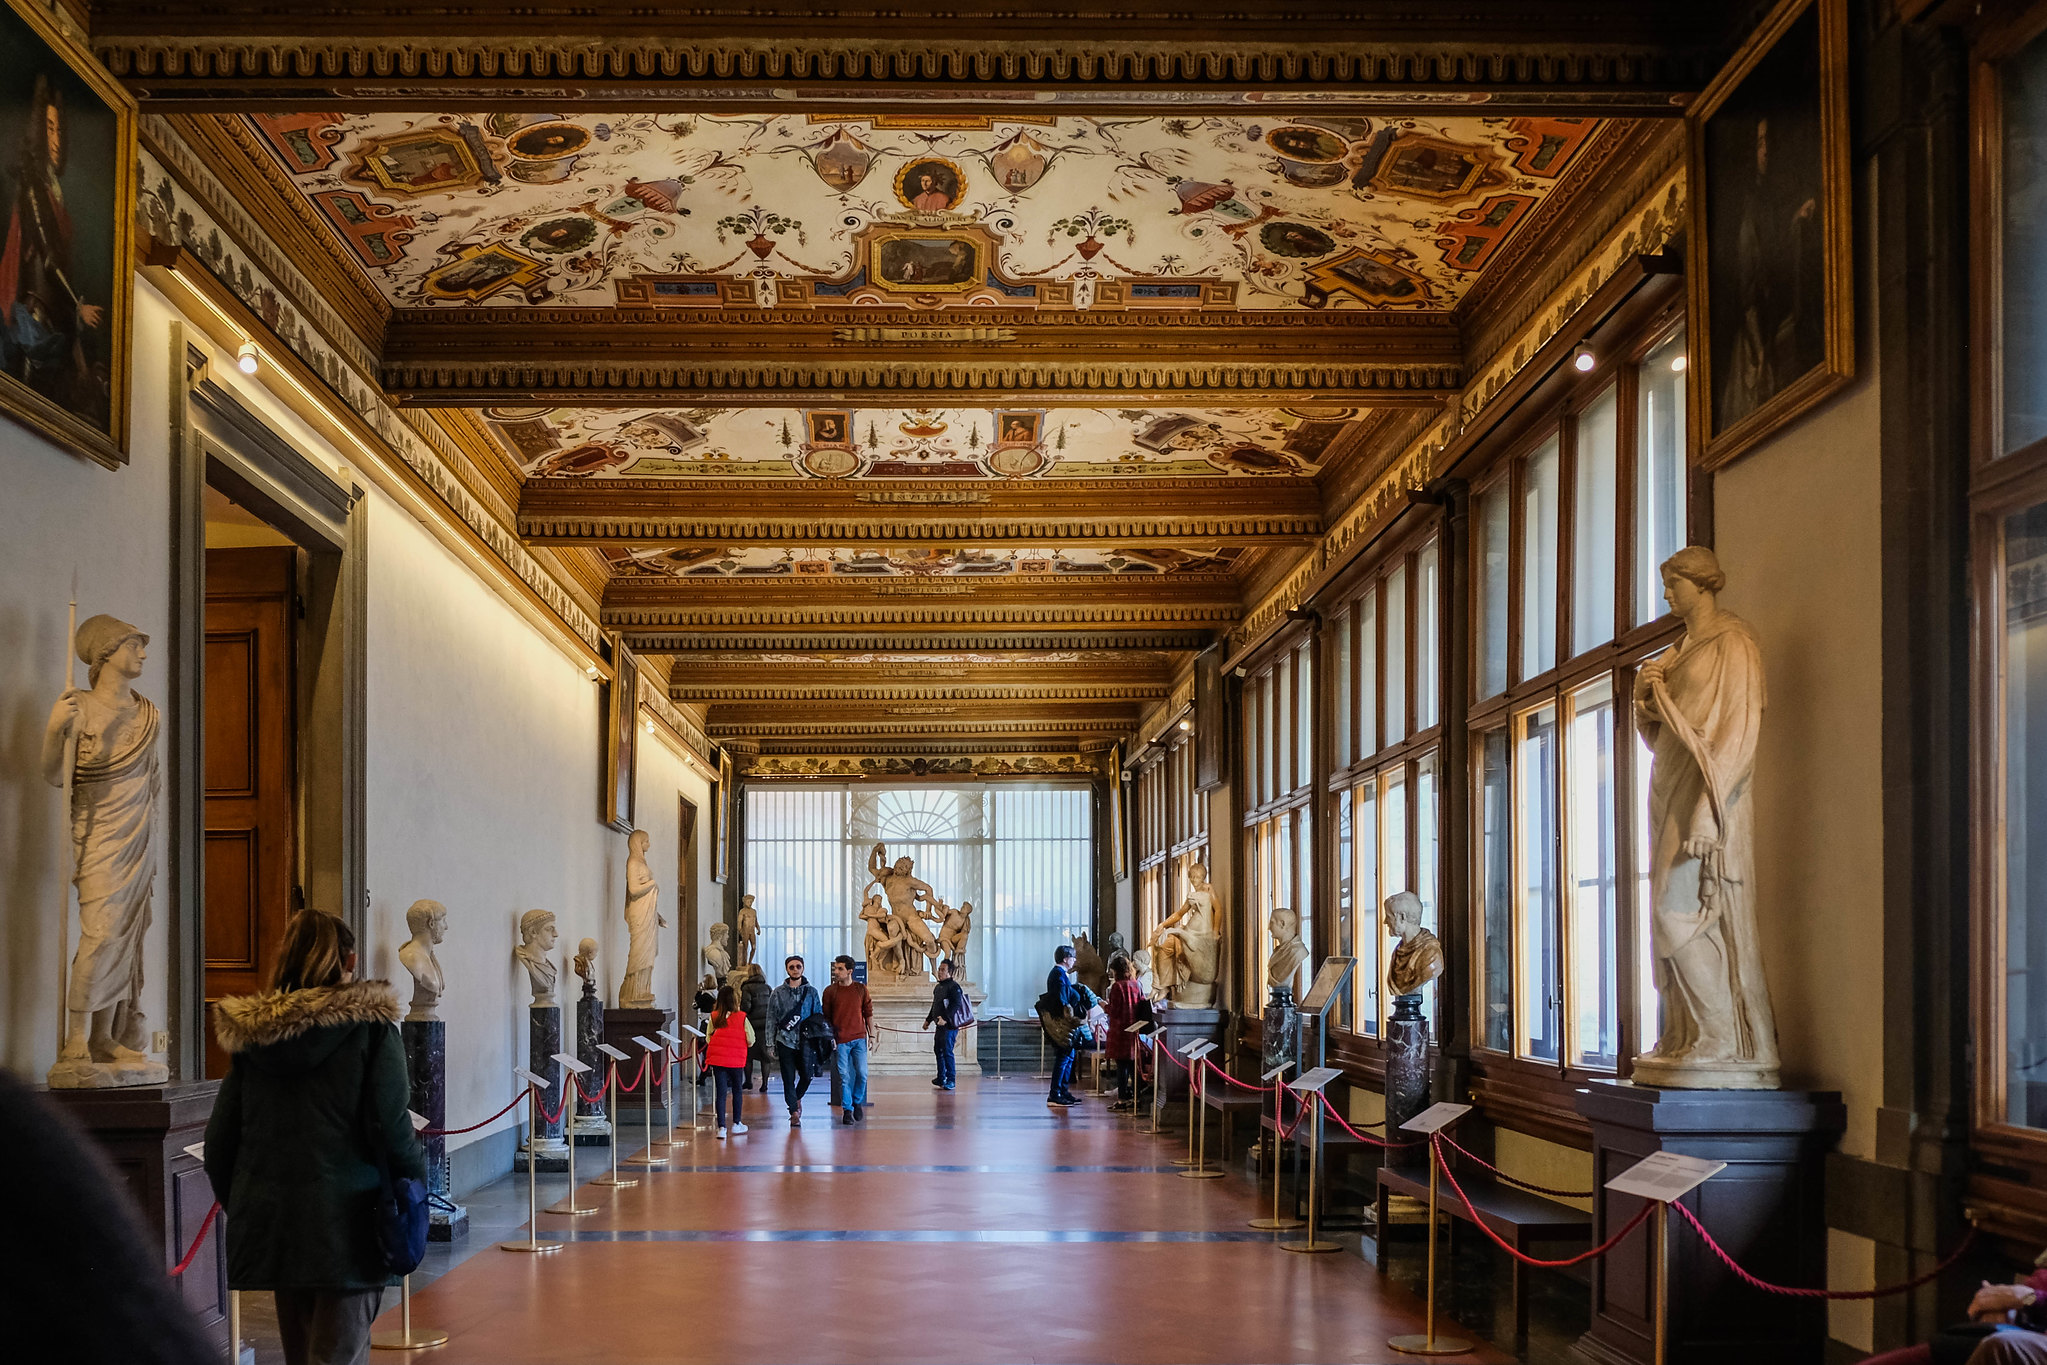 Hallways of the Uffizi